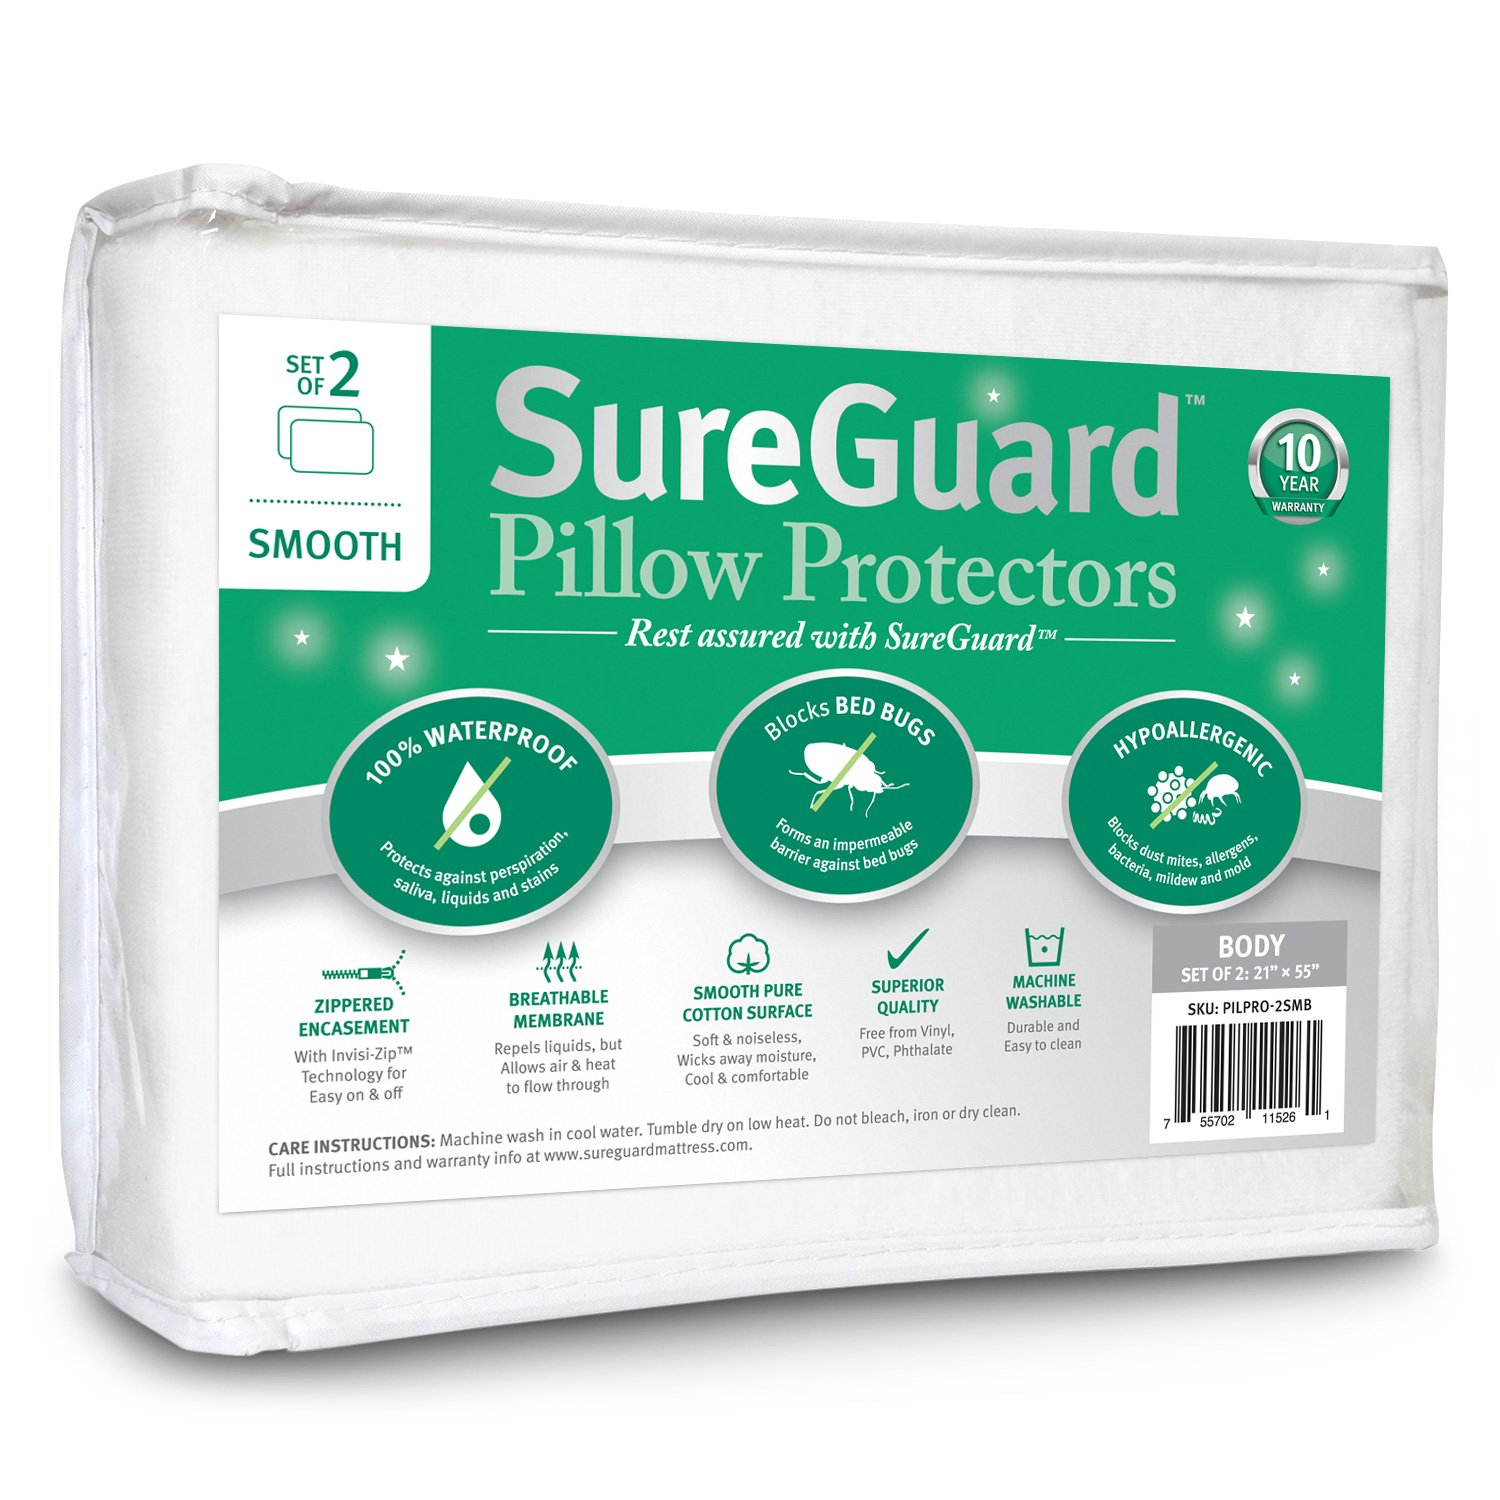 Set of 2 Body Size SureGuard Pillow Protectors - 100% Waterproof, Bed Bug Proof, Hypoallergenic - Premium Zippered Cotton Covers - 10 Year Warranty - Smooth